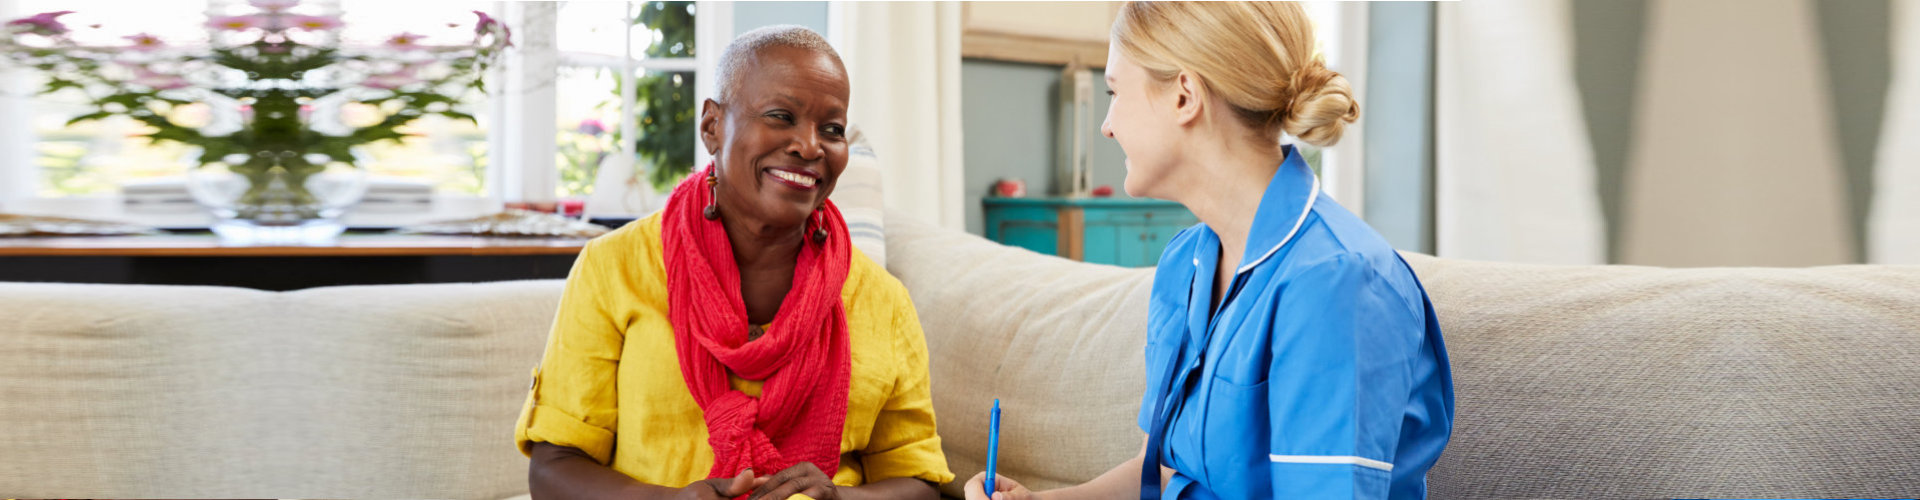 medical social worker counseling senior woman smiling